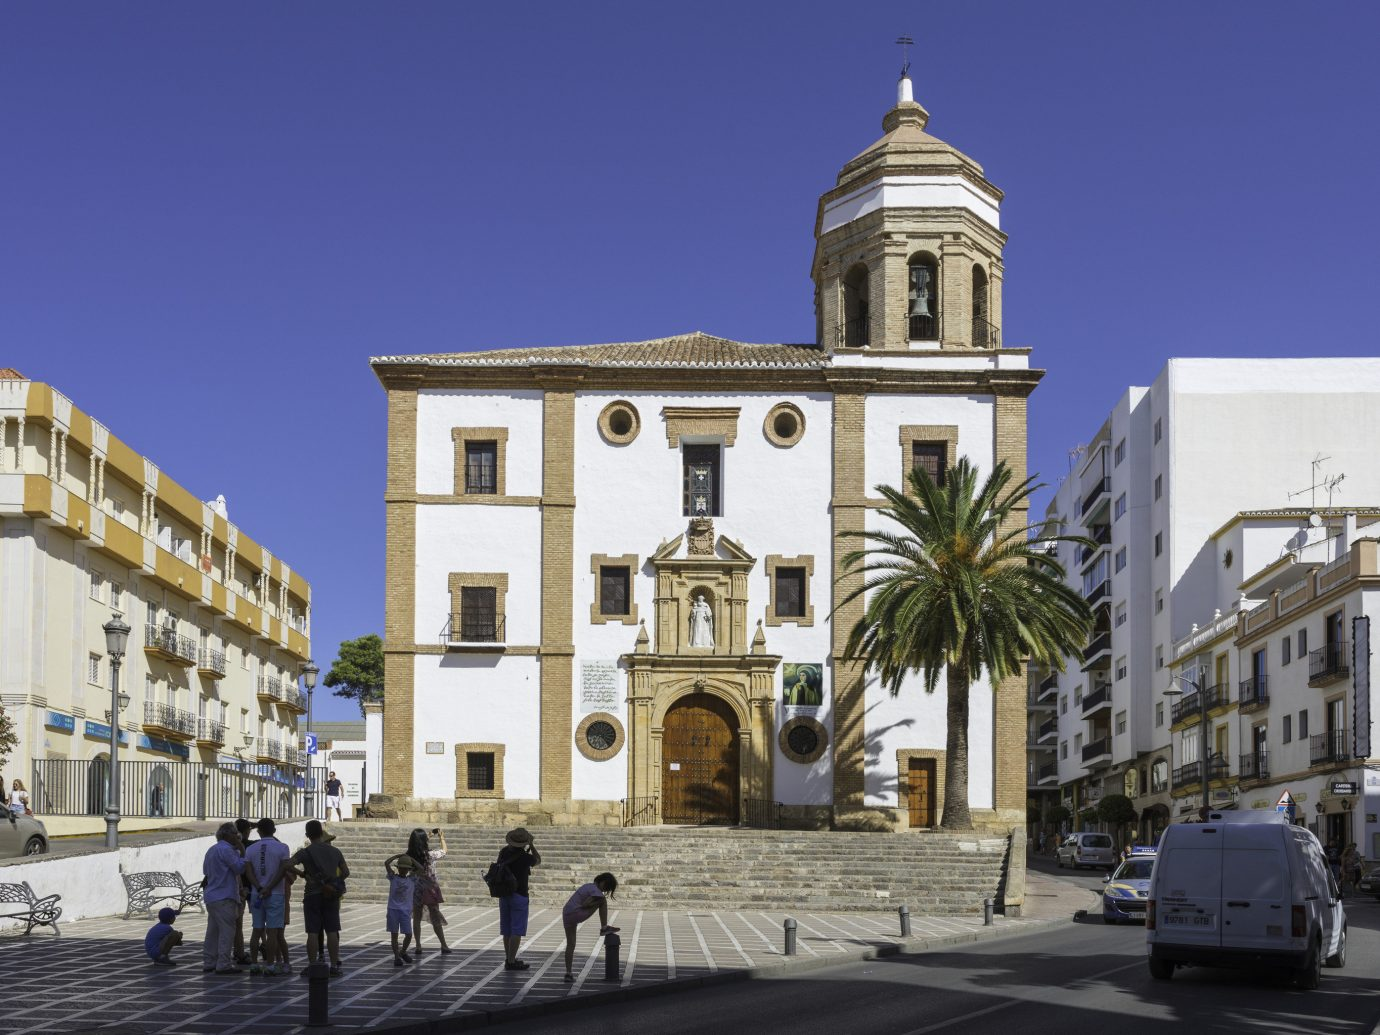 europe Spain Trip Ideas sky building landmark Town town square classical architecture City metropolitan area Church basilica neighbourhood plaza place of worship facade metropolis medieval architecture bell tower street window steeple arch cathedral historic site Downtown tourism